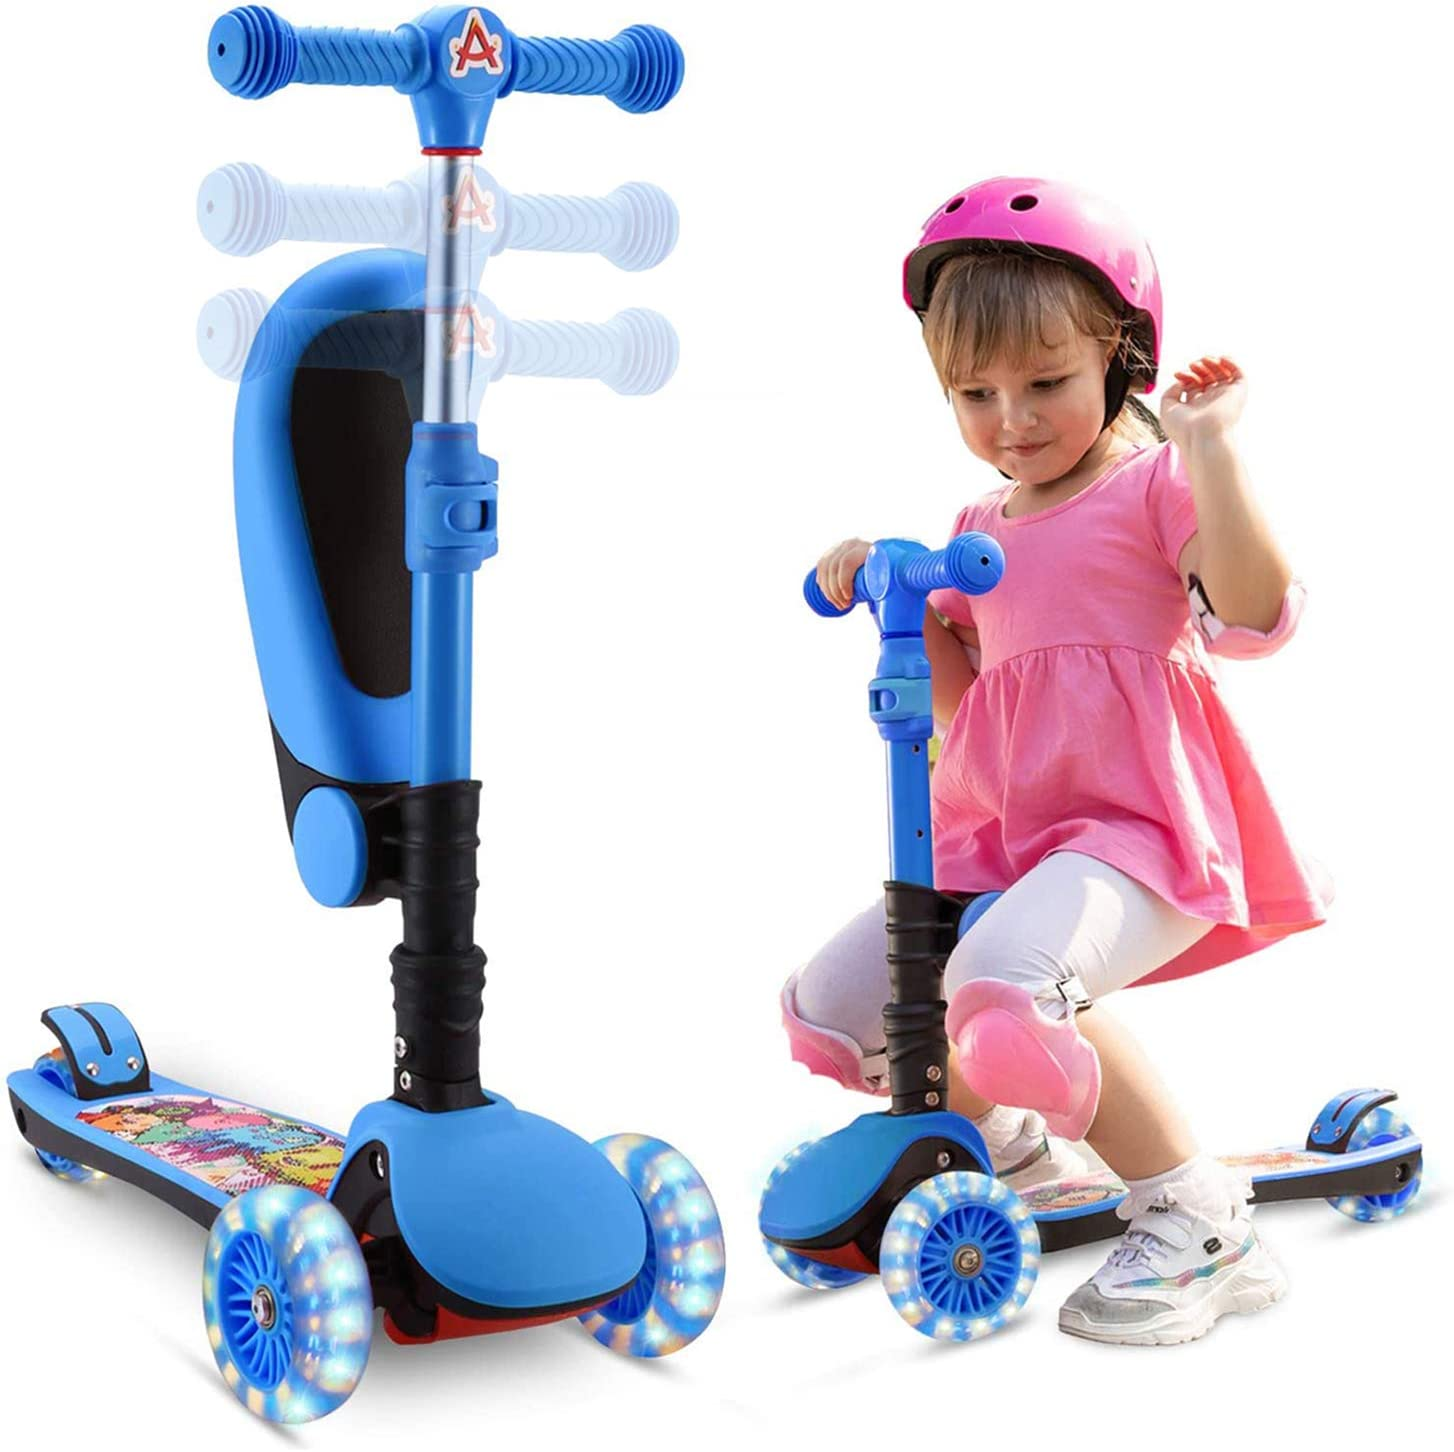 SANSIRP 3 Wheel Scooter for Kids, 2-in-1 Kick Scooter with Folding/Removable Seat 3 Adjustable Height Extra-Wide Deck PU Flashing Wheels for Girls & Boys 2-12 Years Old